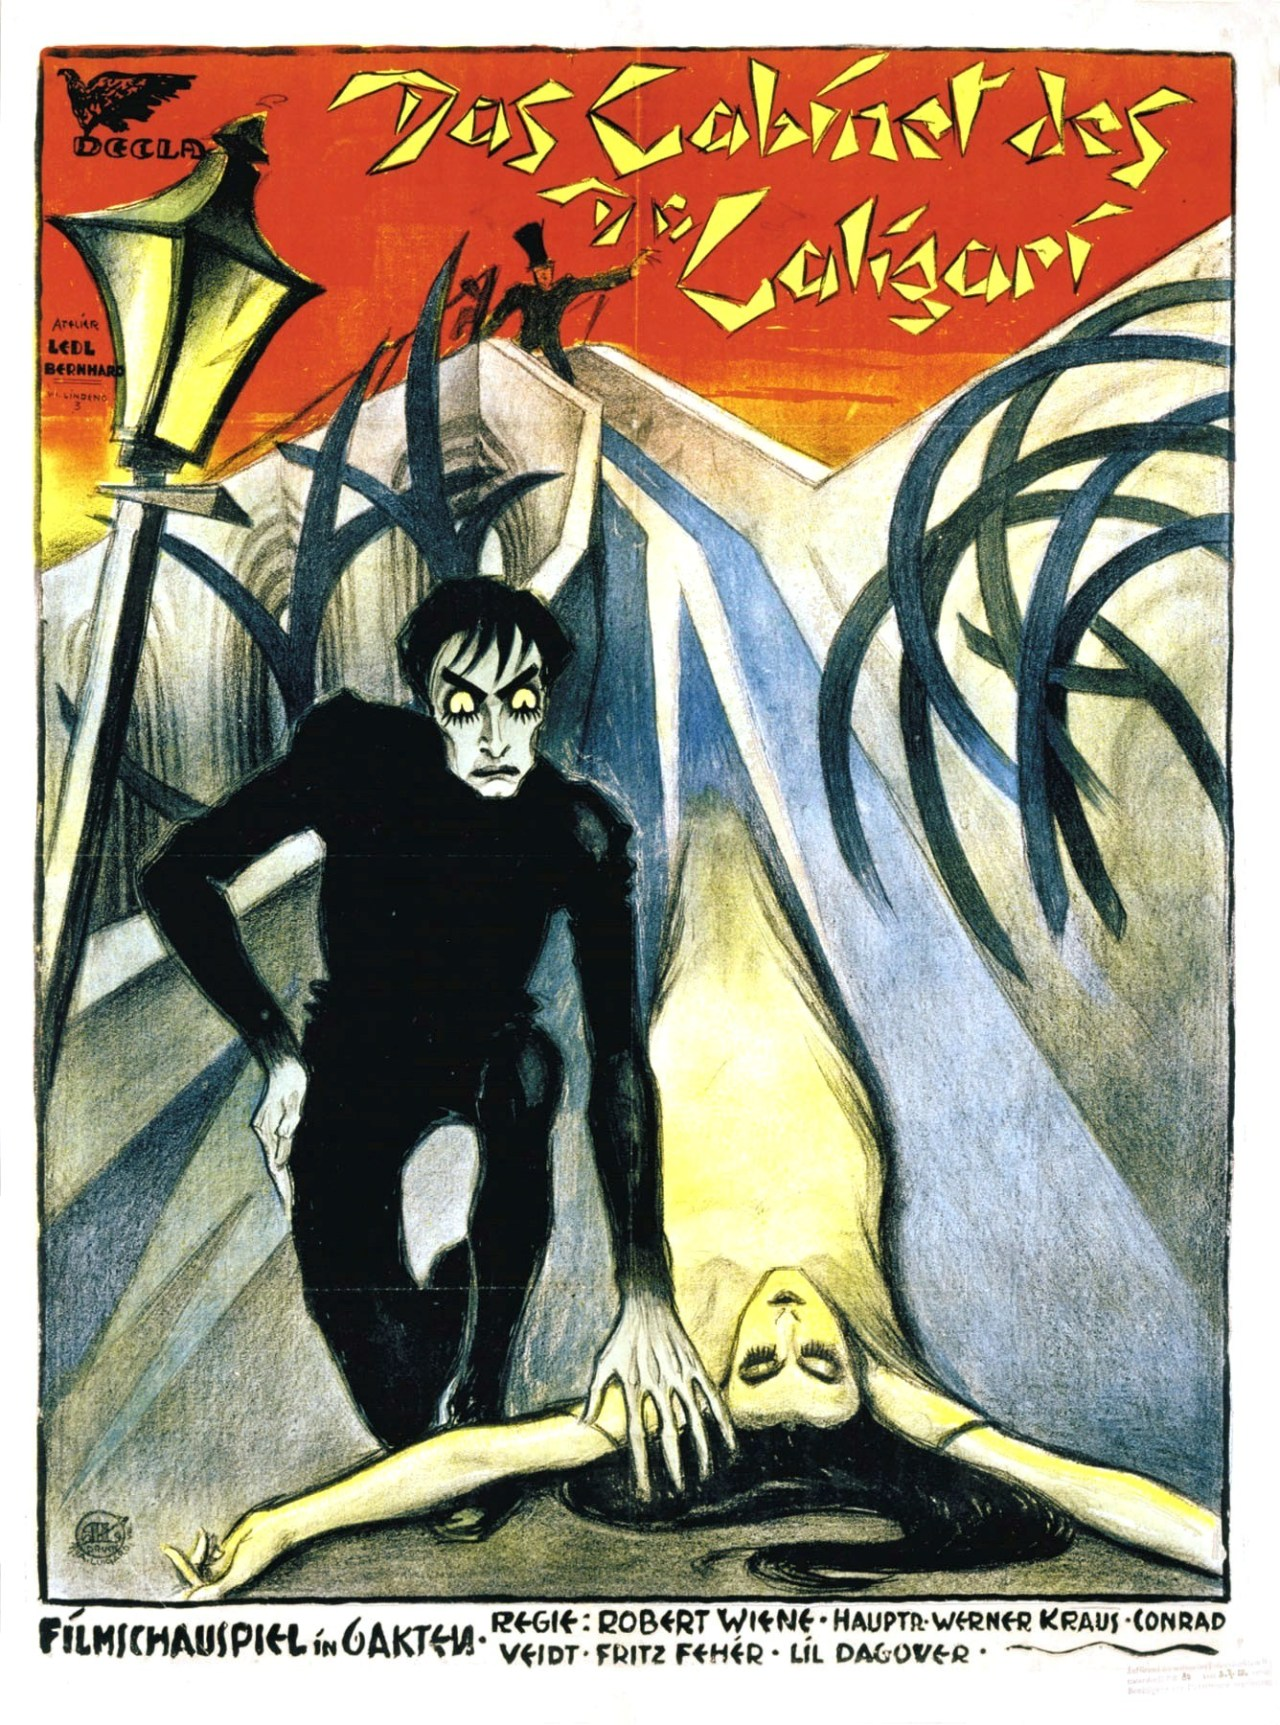 https://upload.wikimedia.org/wikipedia/commons/5/52/Das_Cabinet_des_Dr._Caligari.JPG